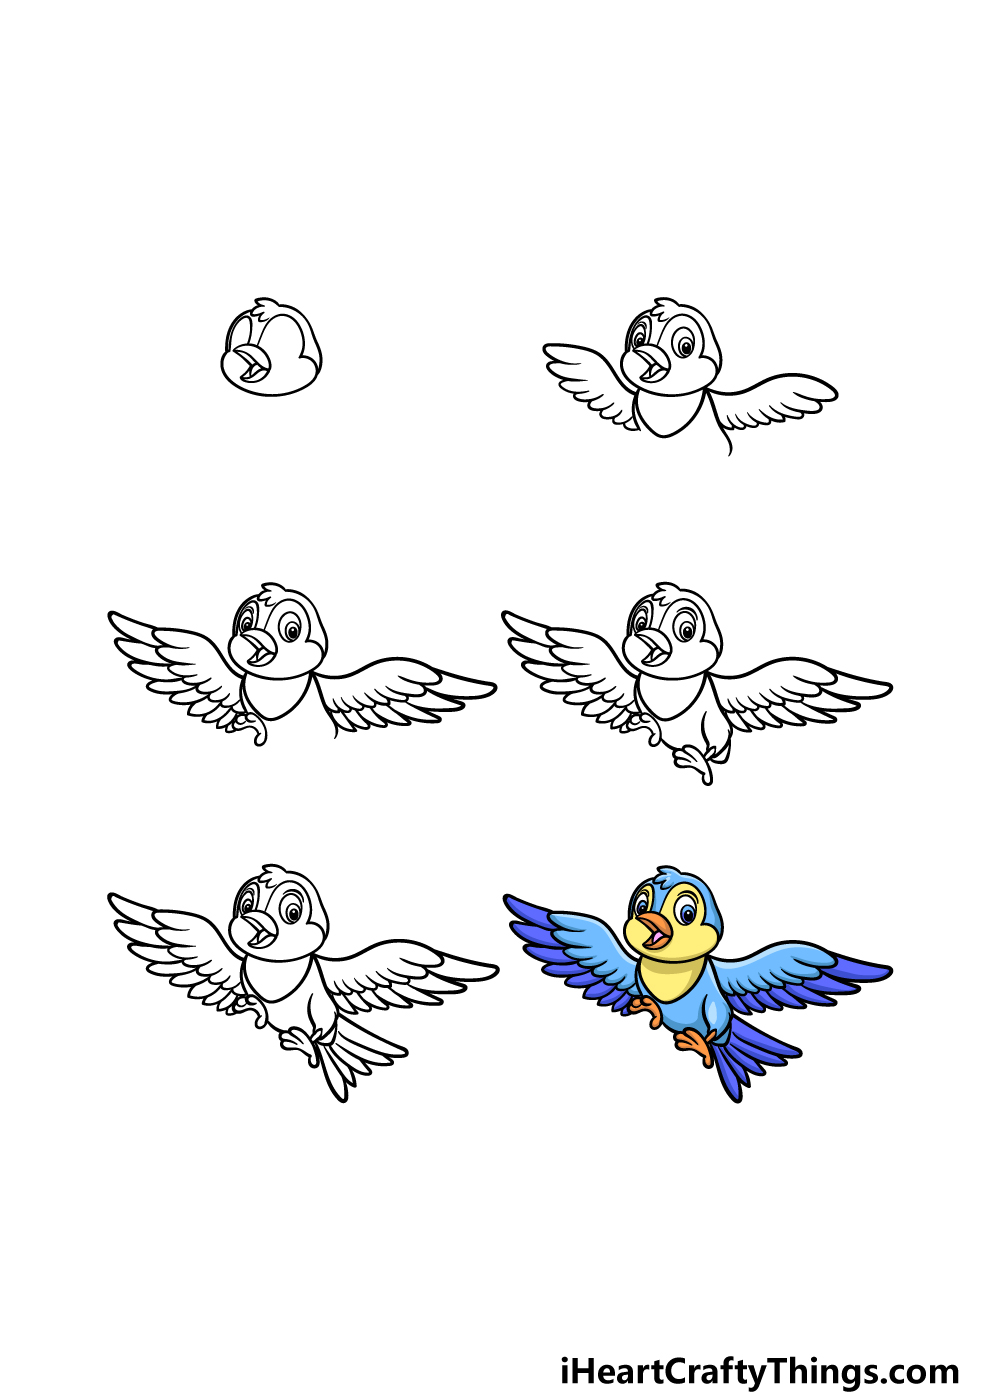 how to draw a cartoon bird in 6 steps